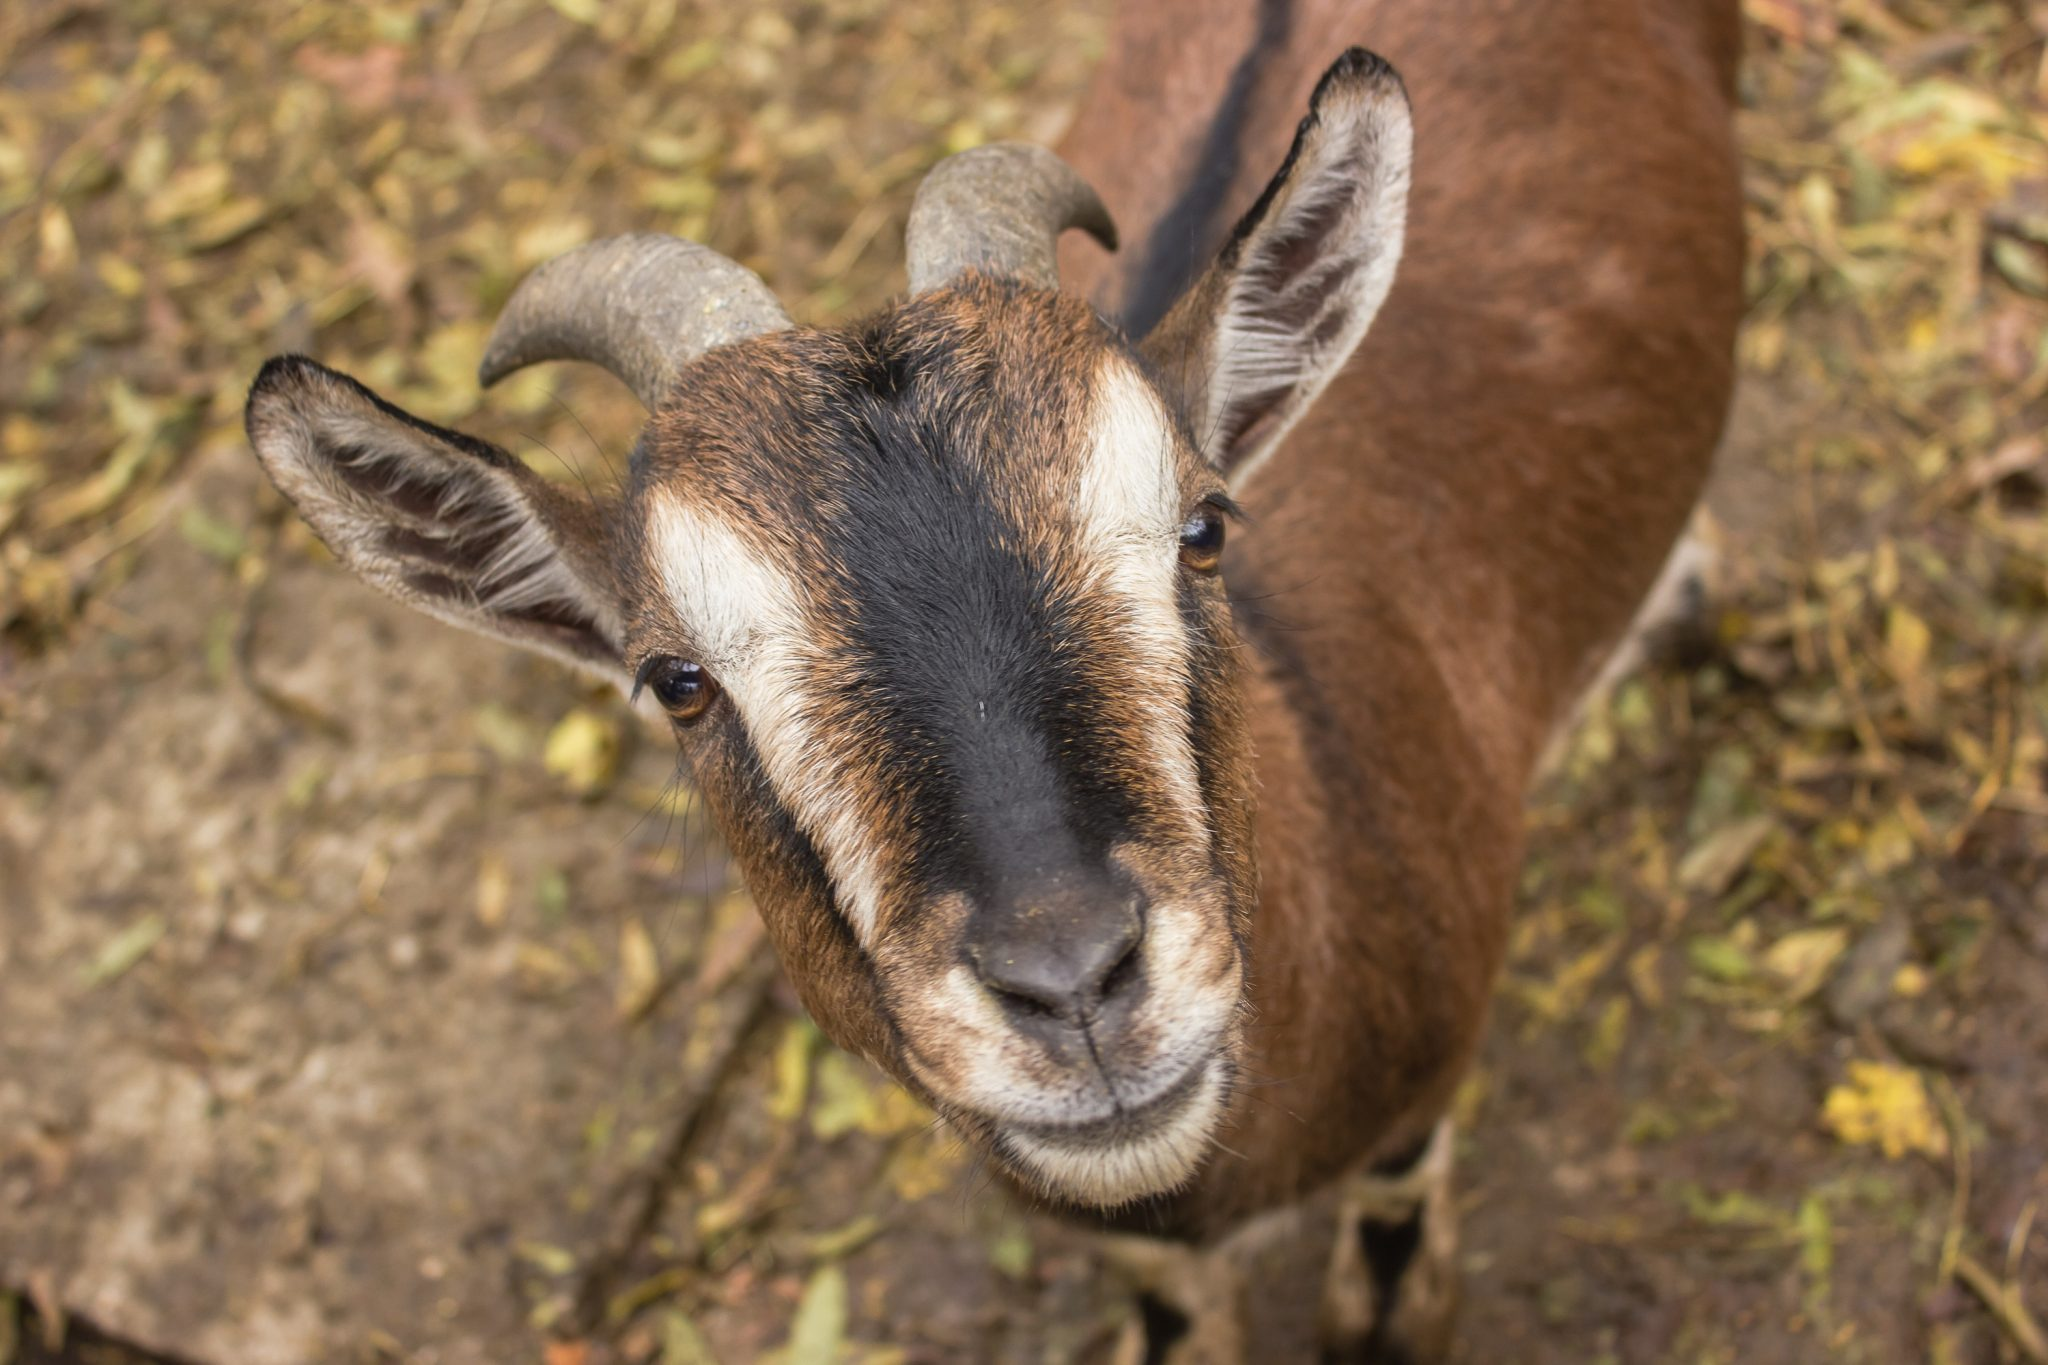 A goat looking into the camera.